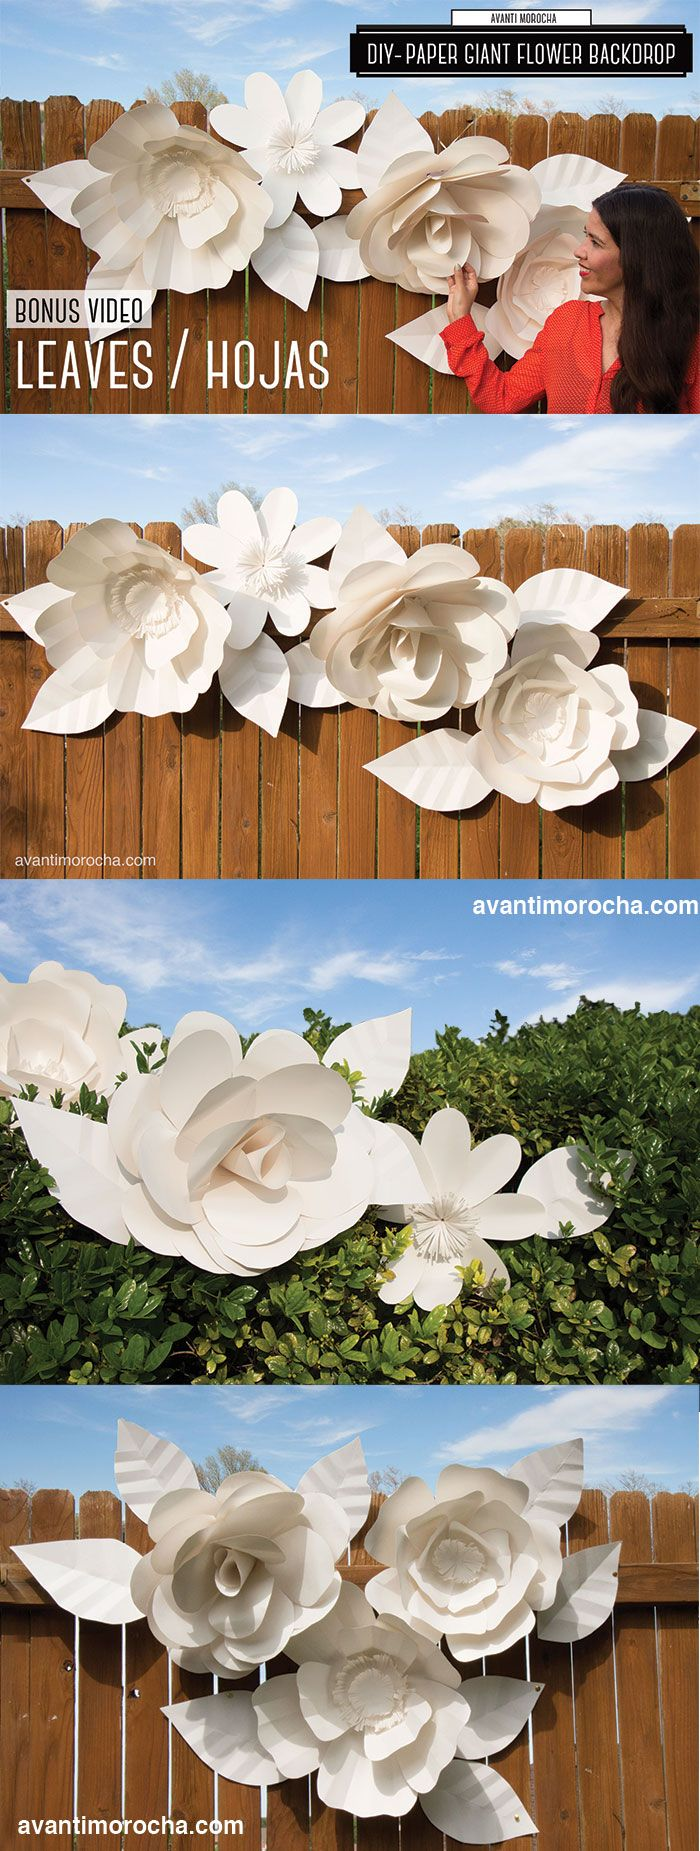 """DIY Paper Giant Paper Flower Backdrop - Leaves . Mural de Flores de Papel Gigantes """"Hojas"""" Wedding / Bodas Download the flowers templates from my blog avantimorocha.com or buy them with one click on my Etsy shop https://www.etsy.com/shop/AvantiMorochaDIYs  Please don't forget to share your creations on my Facebook page https://www.facebook.com/La...  or tag me on Instagram @avantimorocha_1 I'd love to see them :)"""